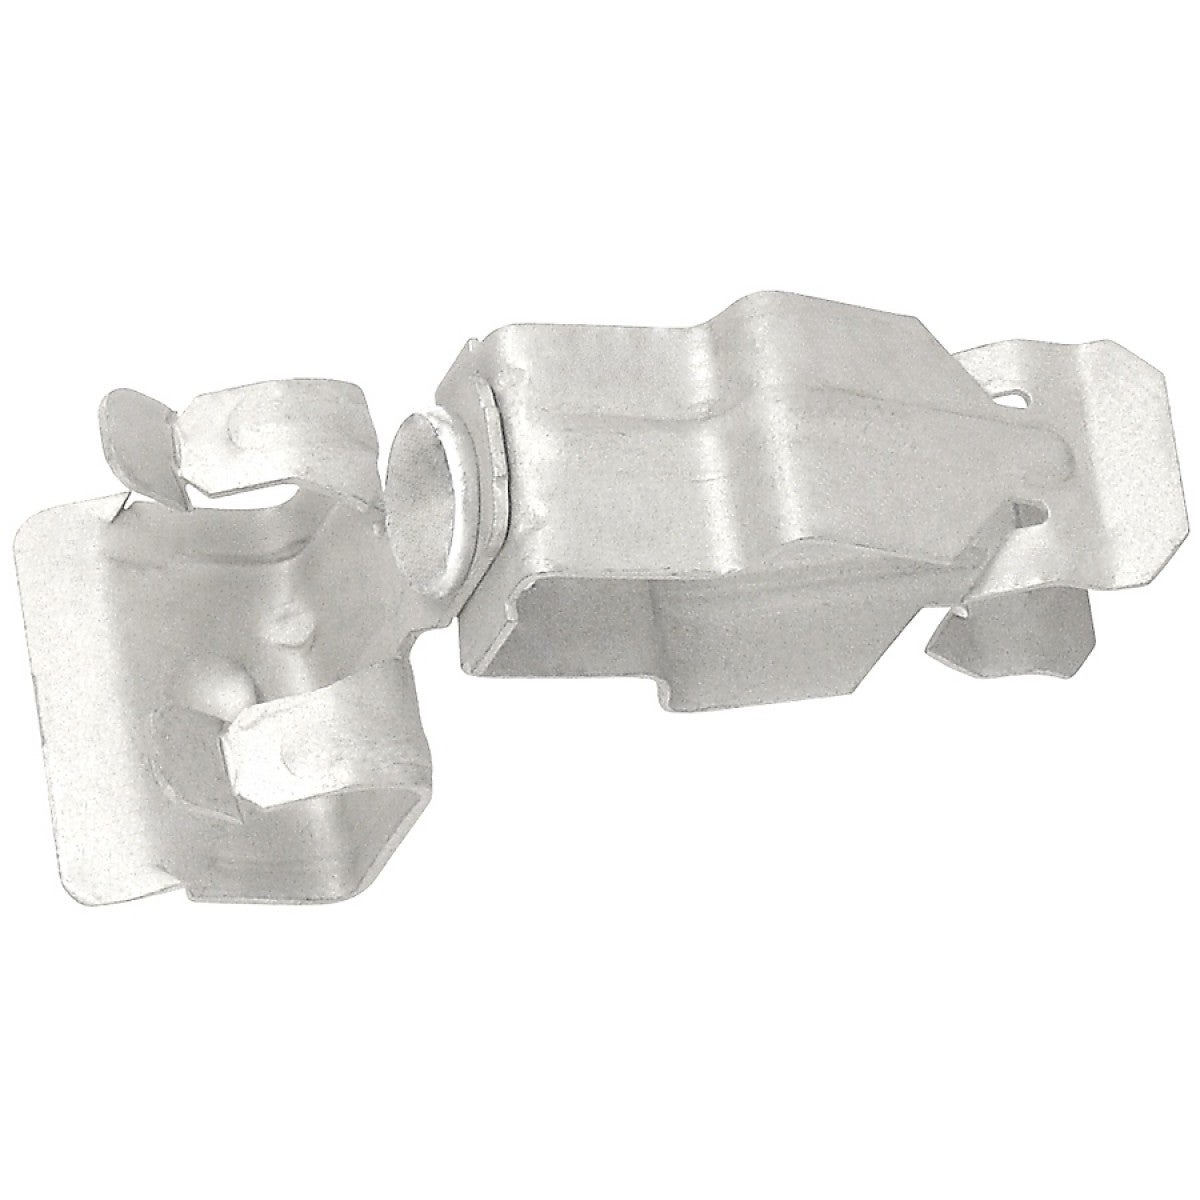 10 Pcs, Push in Conduit Hanger with Hammer on Beam Clamp, Side Mount, for 1 in. EMT and 9/16-3/4 in. Flange, Spring Steel